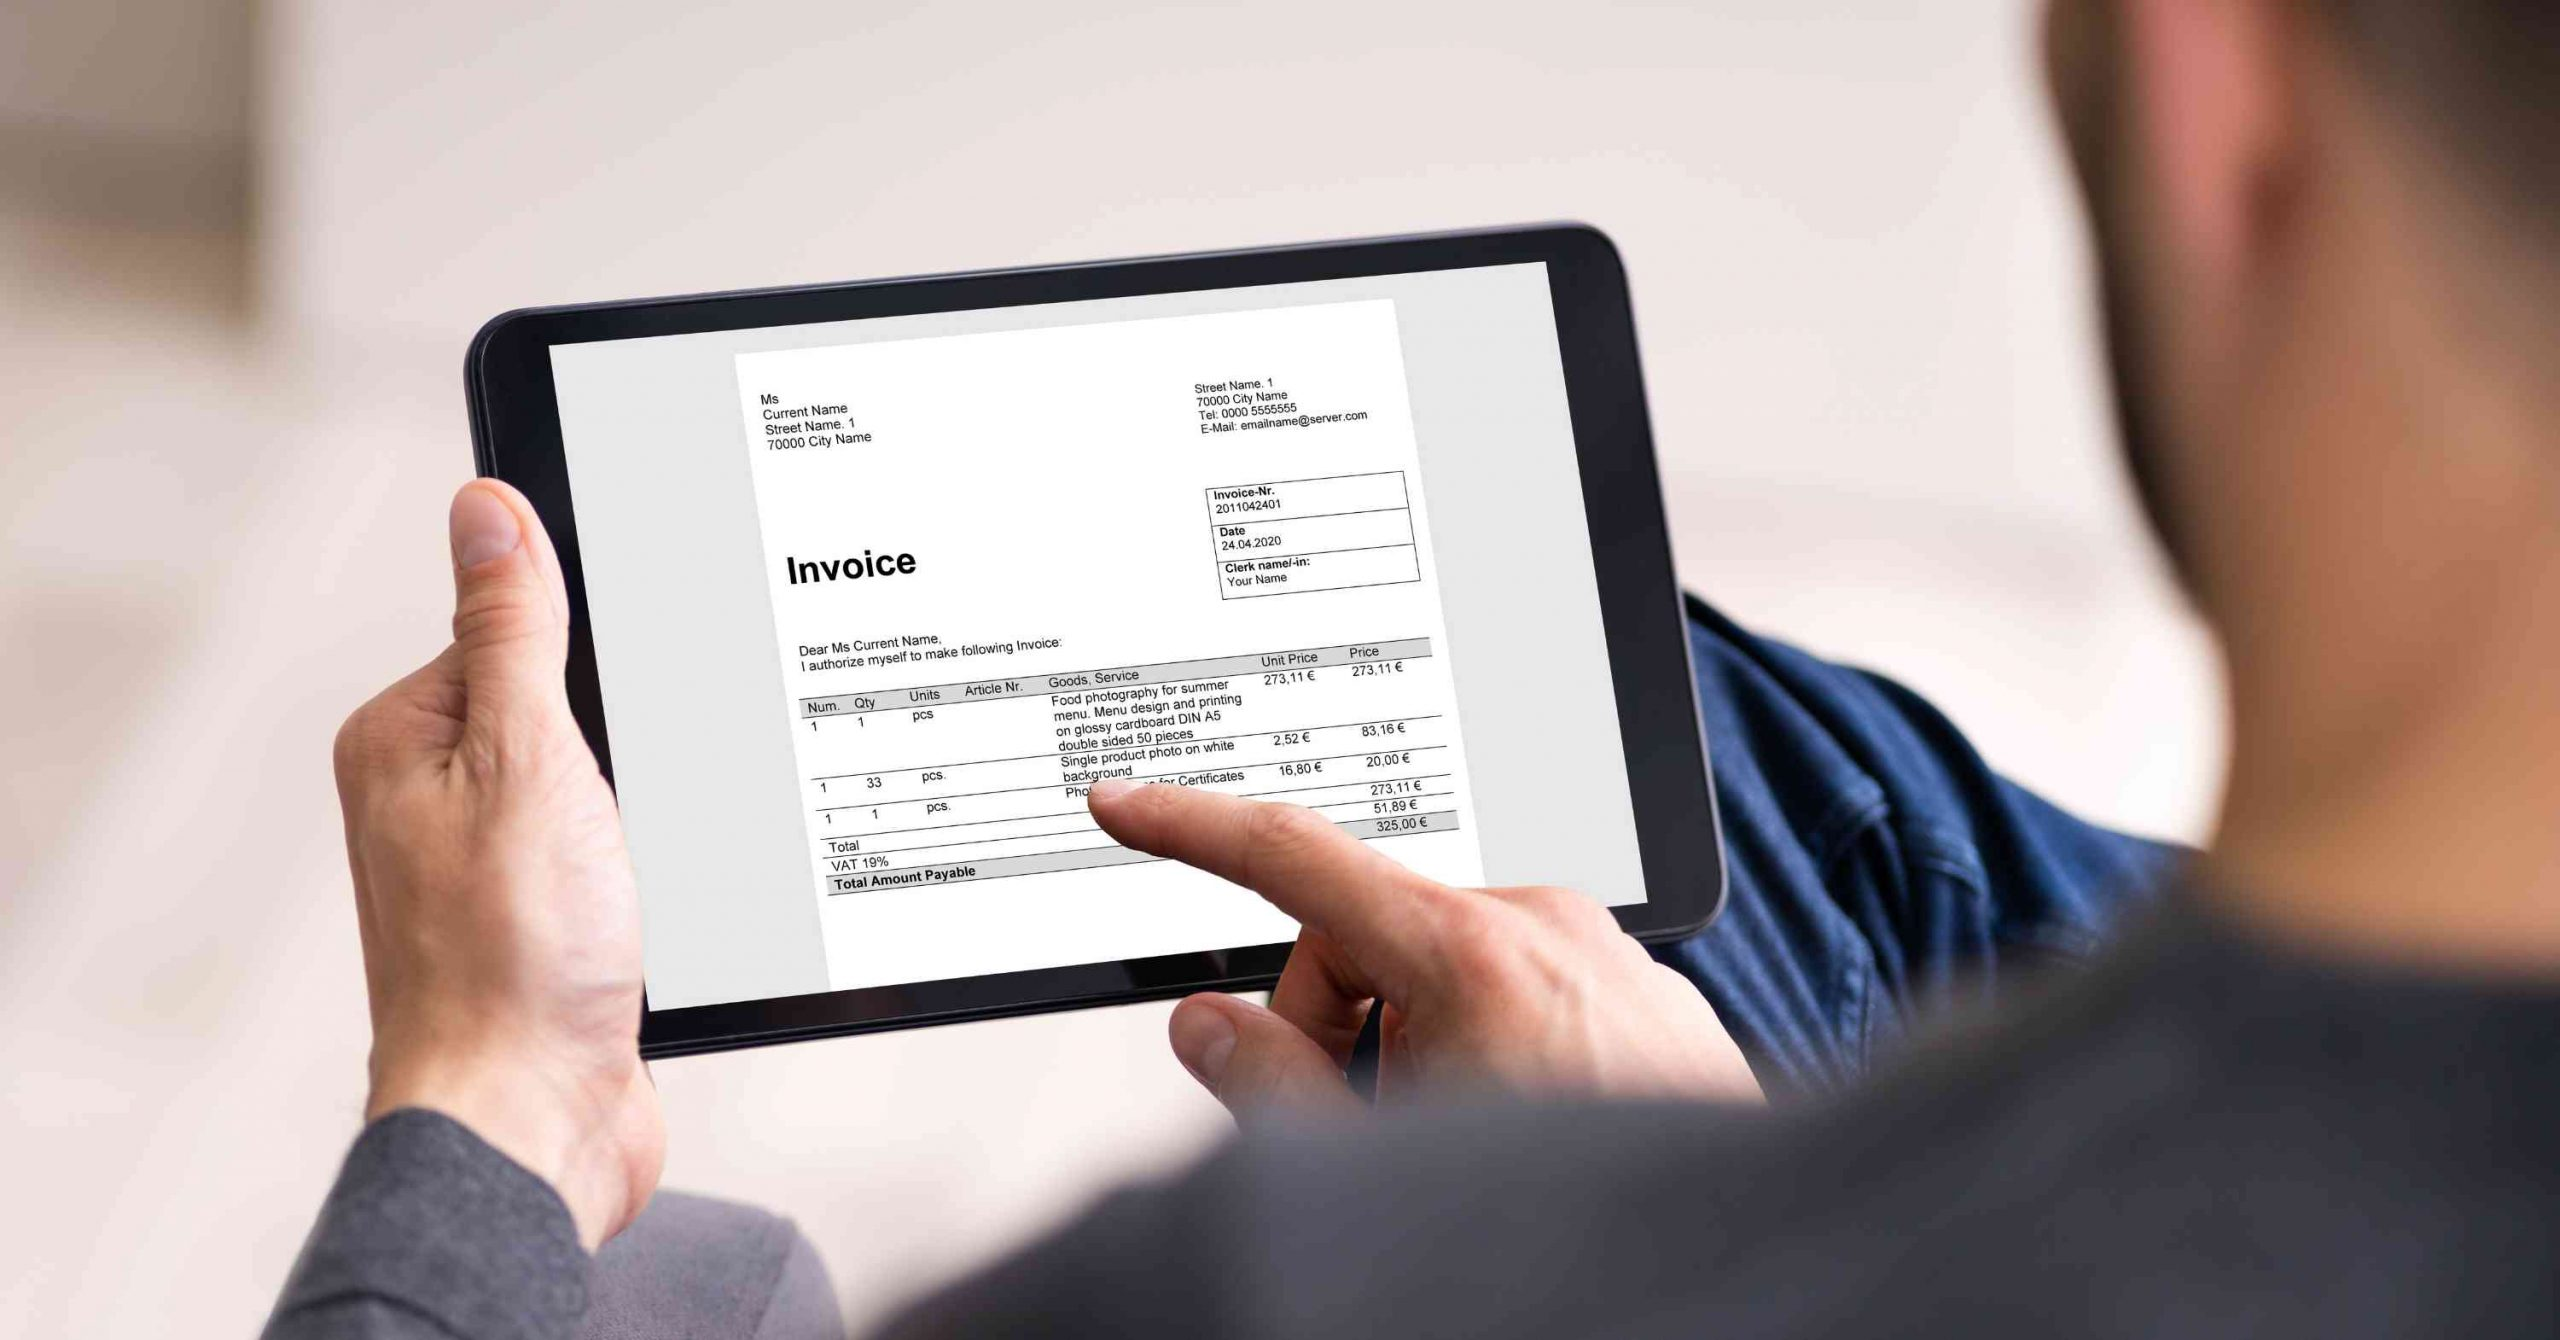 Integrating Quickbooks with a BeSpoke CRM